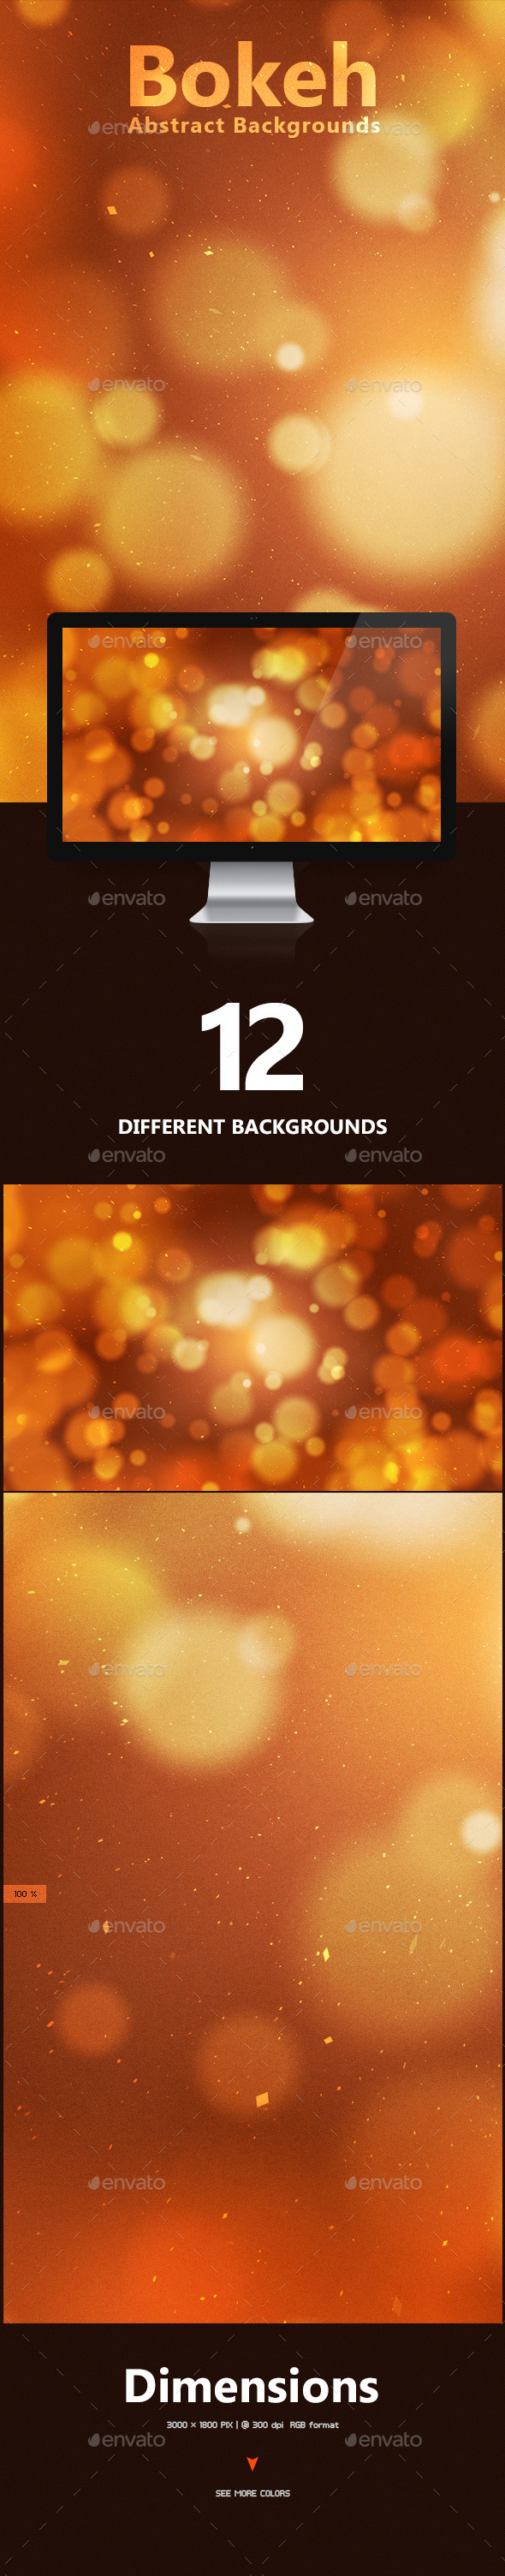 GraphicRiver Bokeh Abstract Backgrounds 9703687